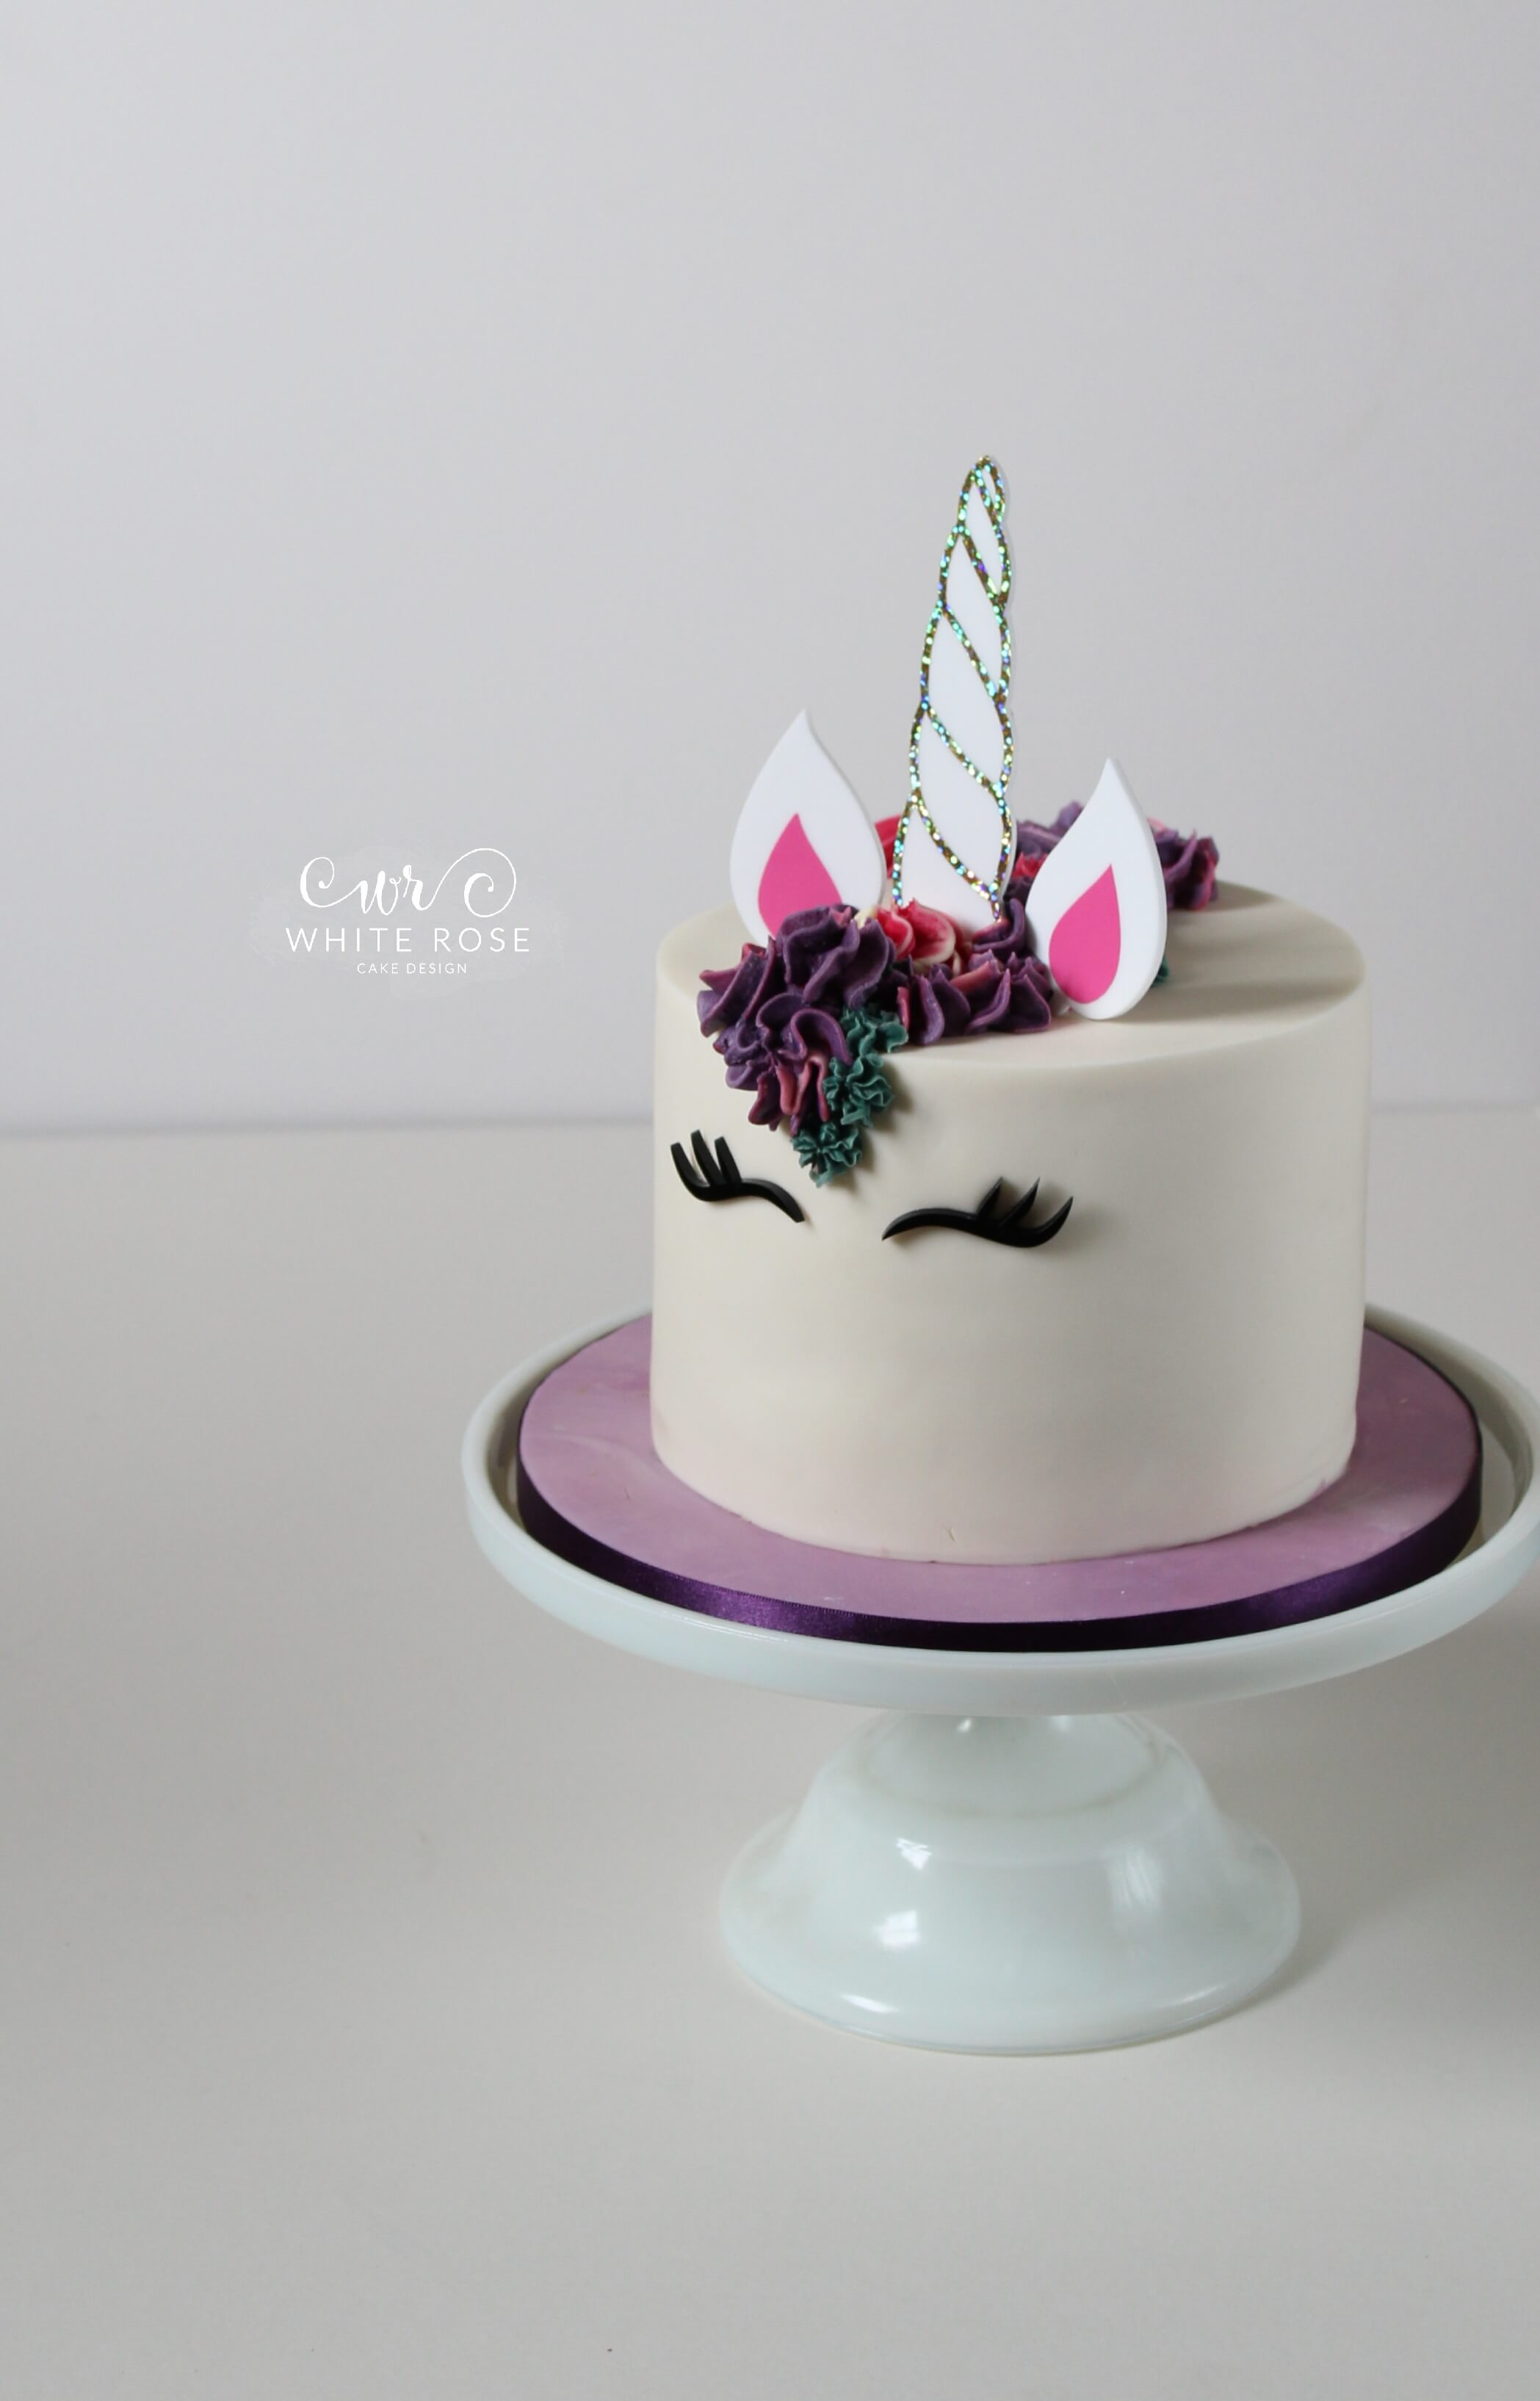 Unicorn Birthday Cake Huddersfield in Purples and Pinks by White Rose Cake Design Bespoke Cake Maker in Huddersfield Holmfirth Halifax West Yorkshire (1)